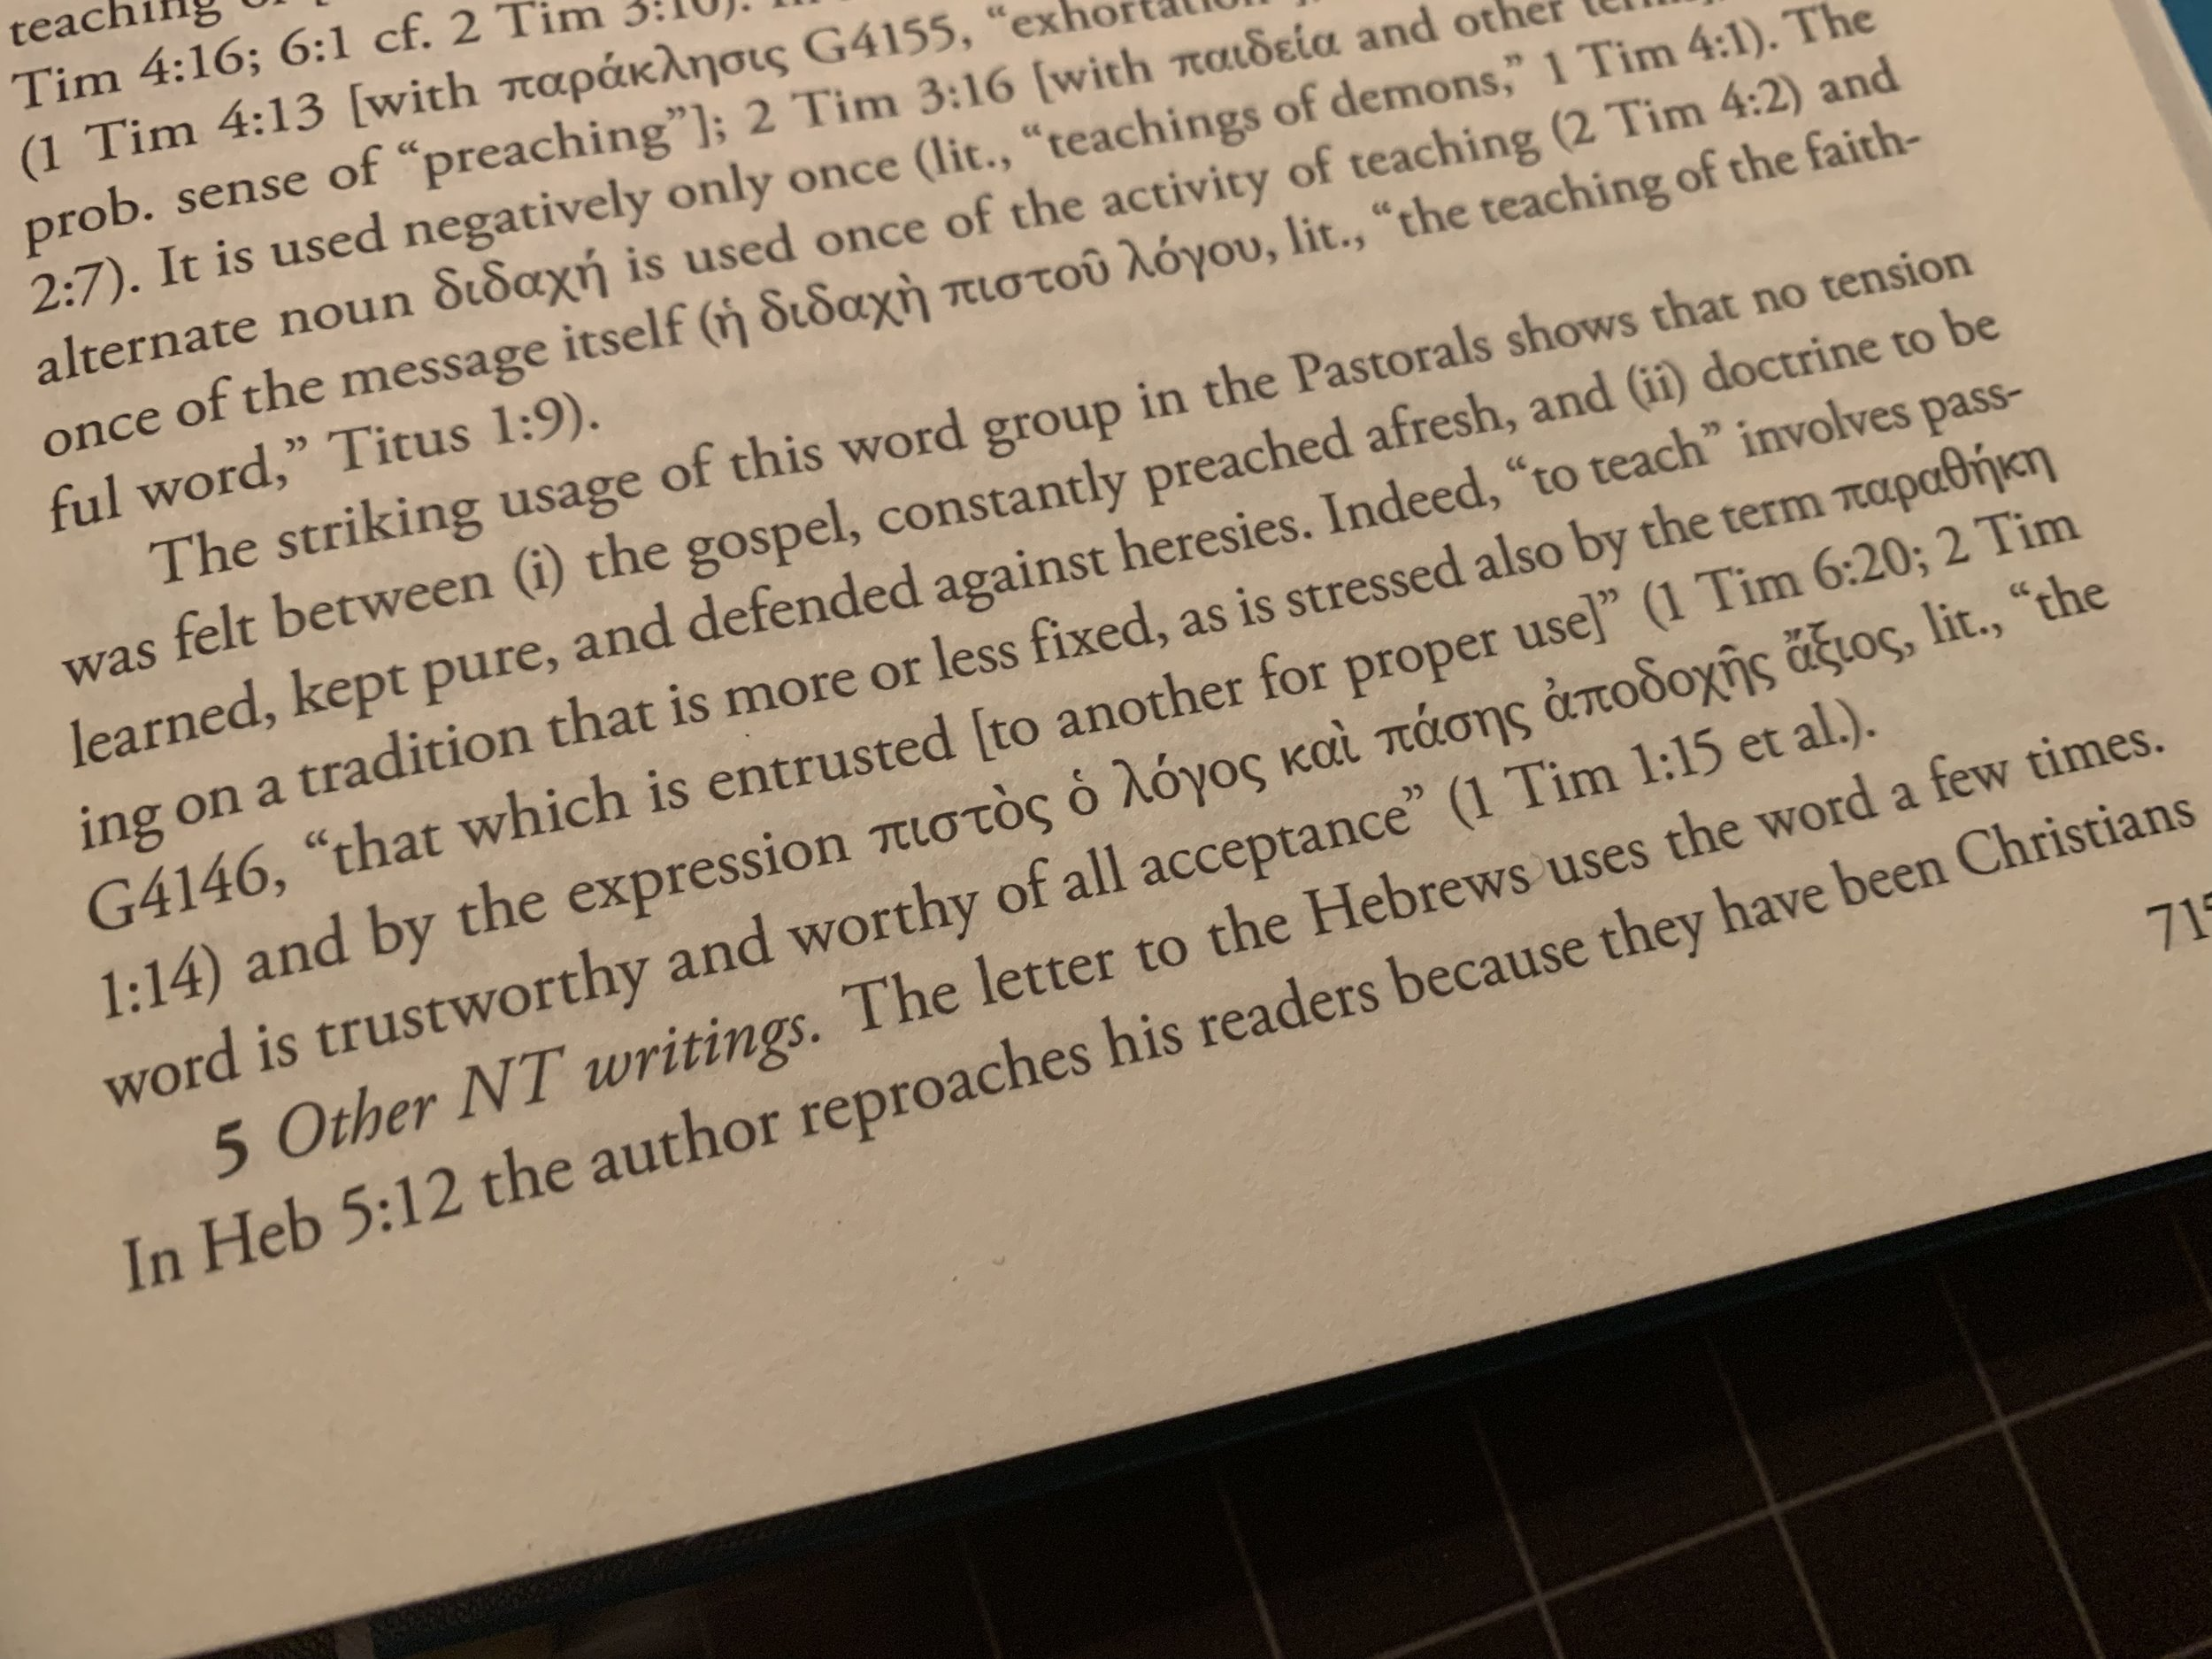 """Teaching"" in the Pastoral Epistles according to the standard scholarly New Testament dictionary,  New International Dictionary of New Testament Theology and Exegesis , vol.1. Zondervan, 2014, 715."